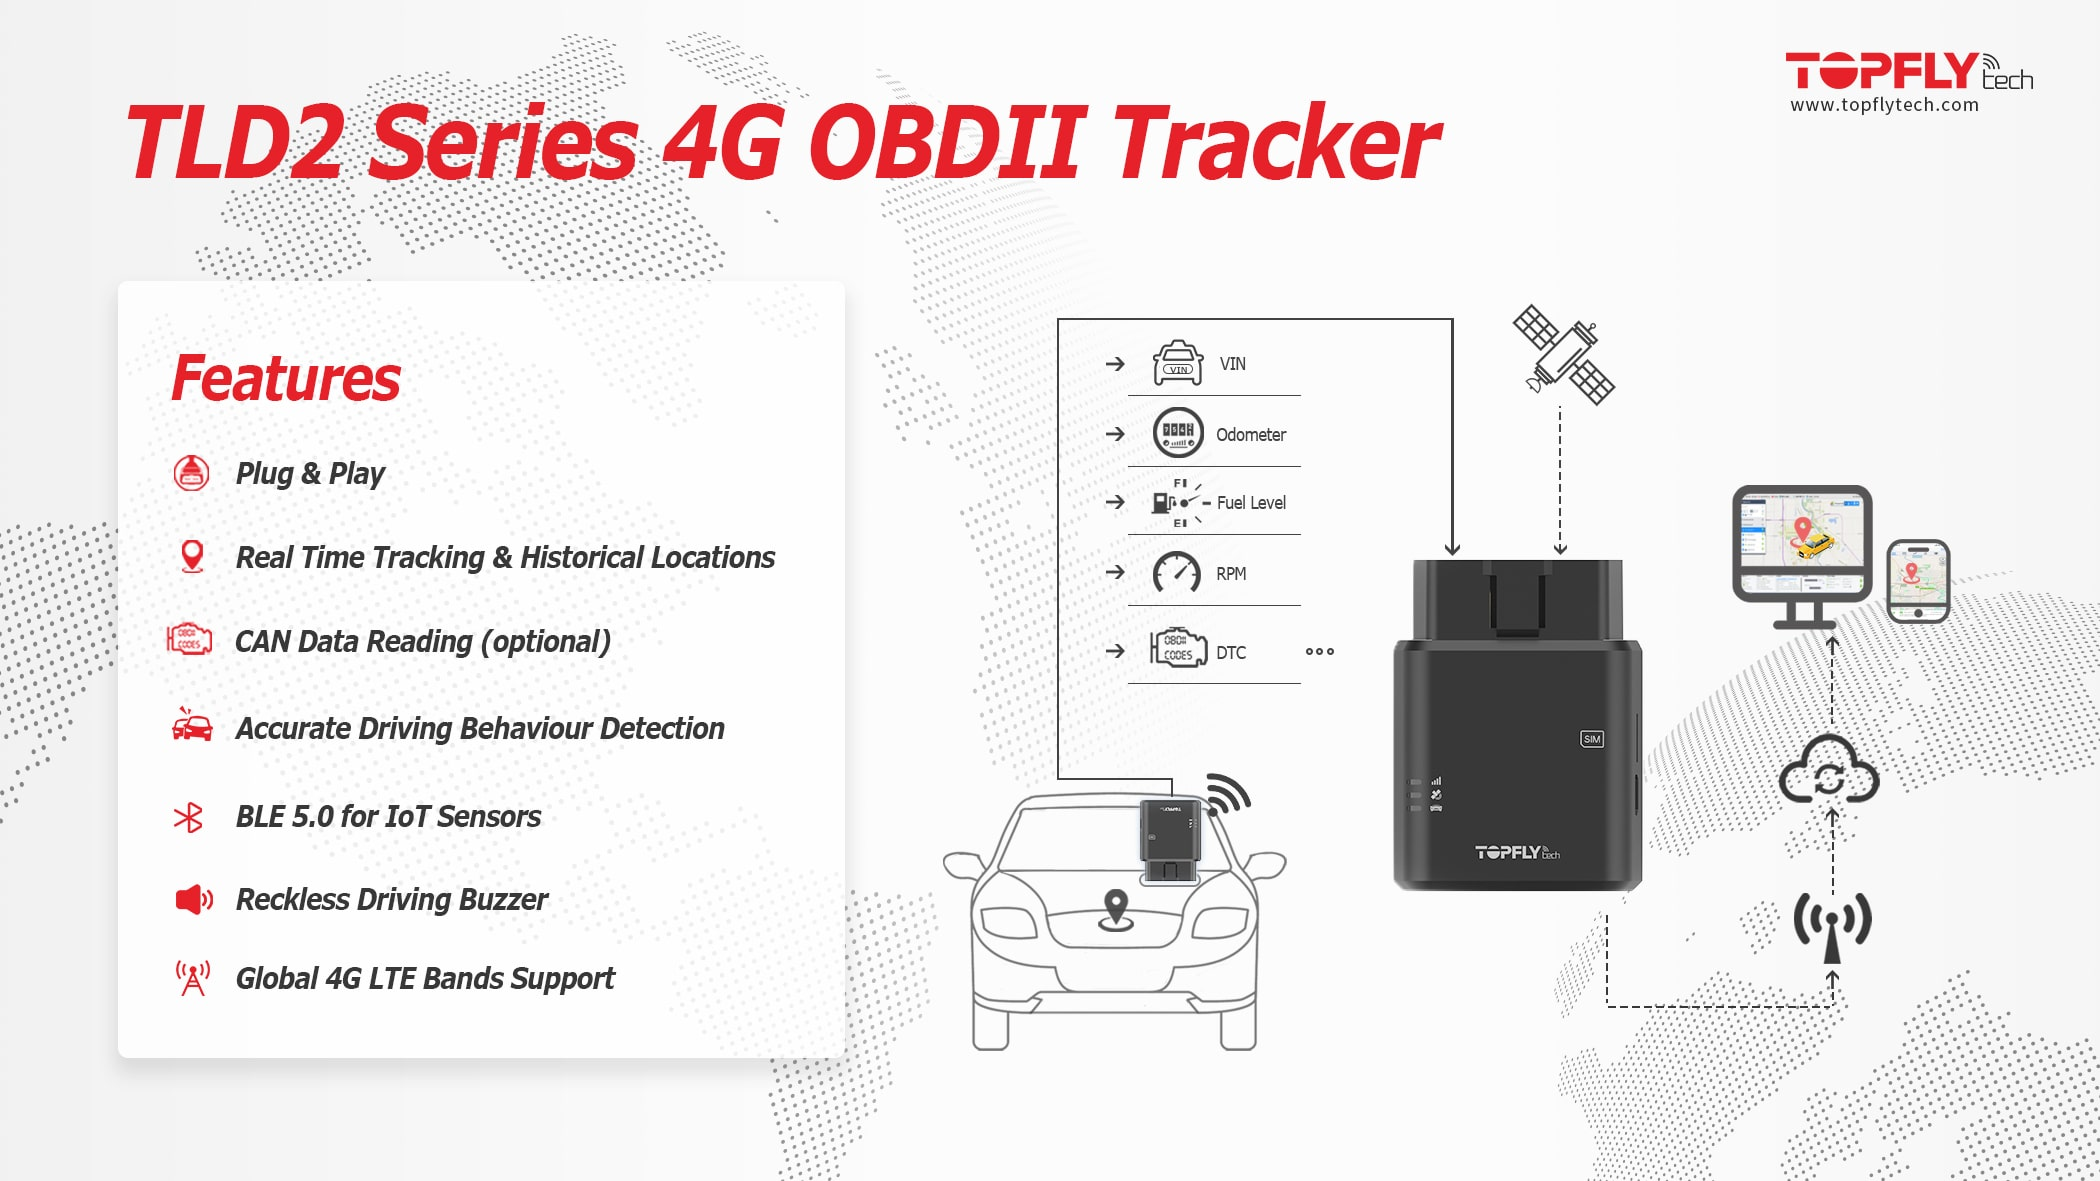 Product | TLD2 Series 4G OBDII Tracker